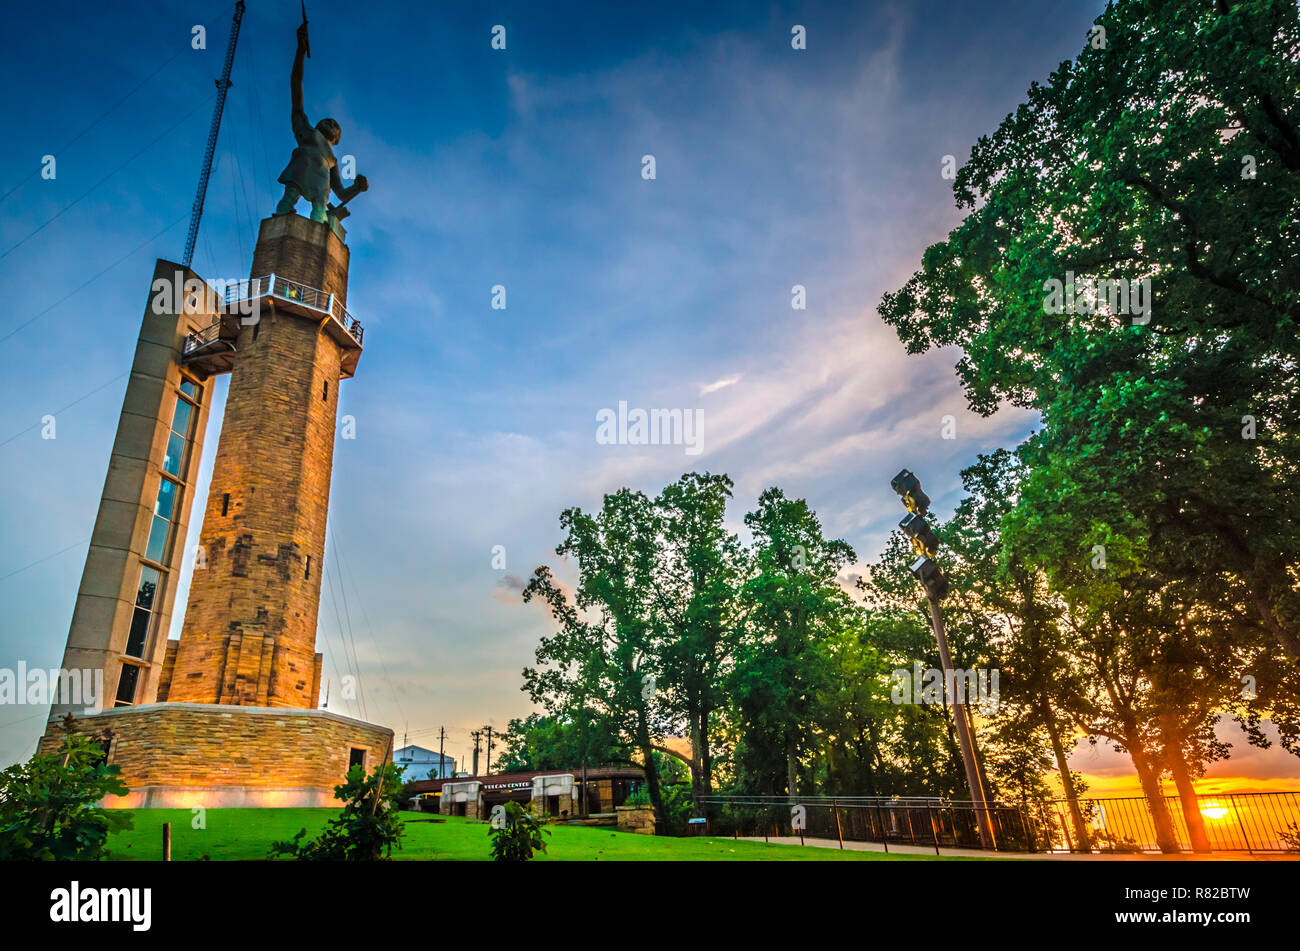 The sun sets at Vulcan Park, July 19, 2015, in Birmingham, Alabama. The park features an iron statue of the Roman God, Vulcan. - Stock Image